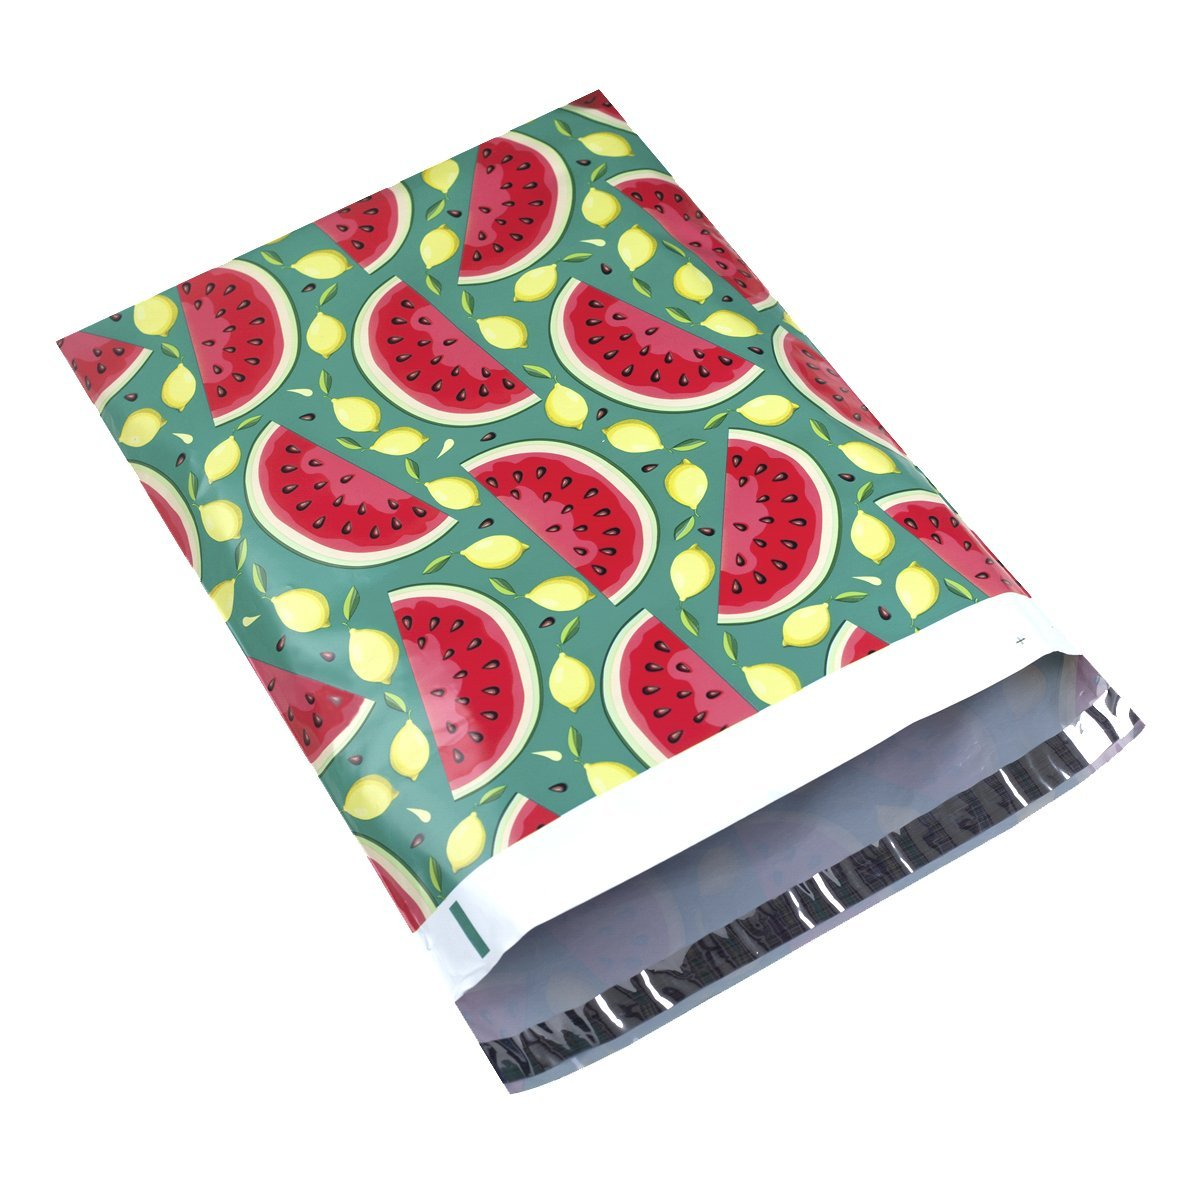 Poly Mailer Bags-100 Pack #5 12x15.5 inch 2.35MIL Watermelon Designer Shipping Envelope Mailers Boutique Custom Bags for UCGOU